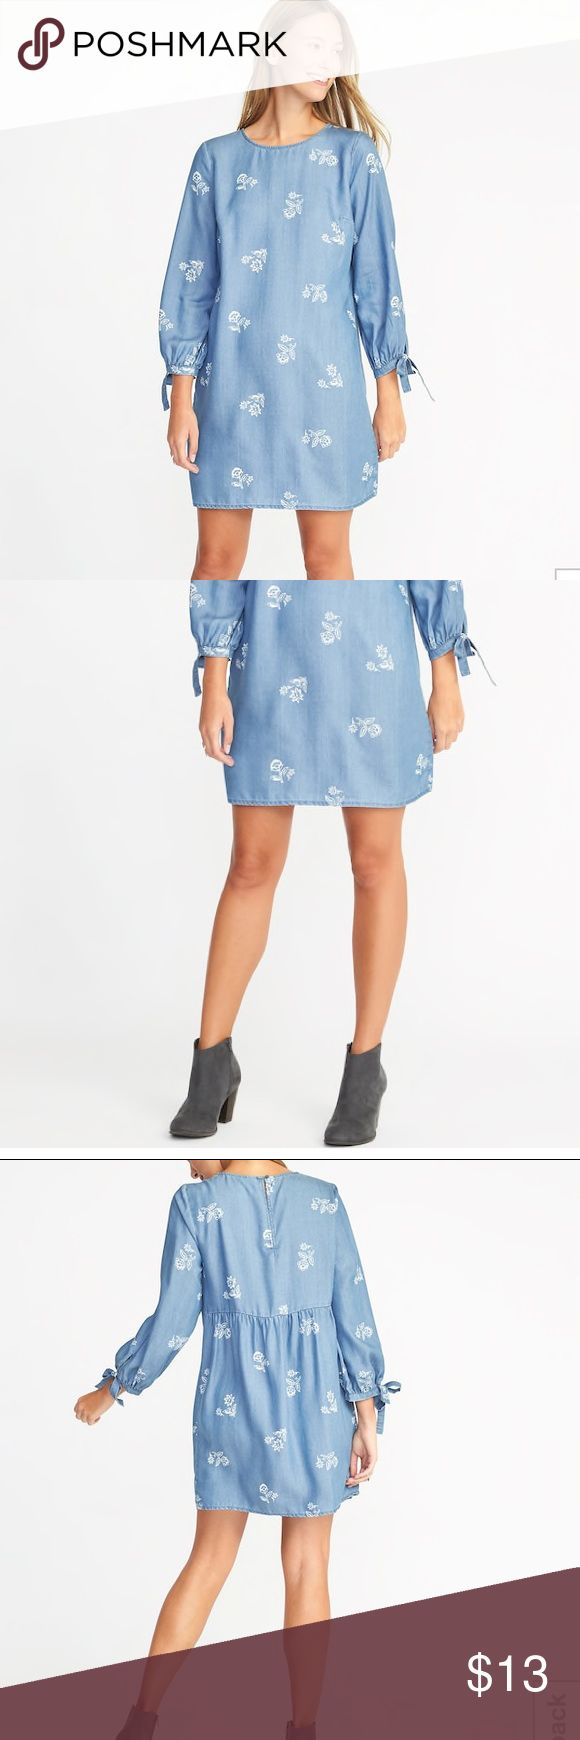 "Old Navy Tie Cuff floral blue Tencel shift dress Women's Old Navy tie sleeve shift dress, size XS. It has 3/4 length sleeves and is made of a material (tencel) that is like chambray but much lighter weight. It is a beautiful dress and very comfortable and flattering from the Spring 2018 line. It has been worn only once so it is excellent preowned condition. Smoke-free and pet-free home 😊  Measurement: 18"" across the bust from underarm to underarm, 20"" sleeve, 32"" long from shoulder to…"